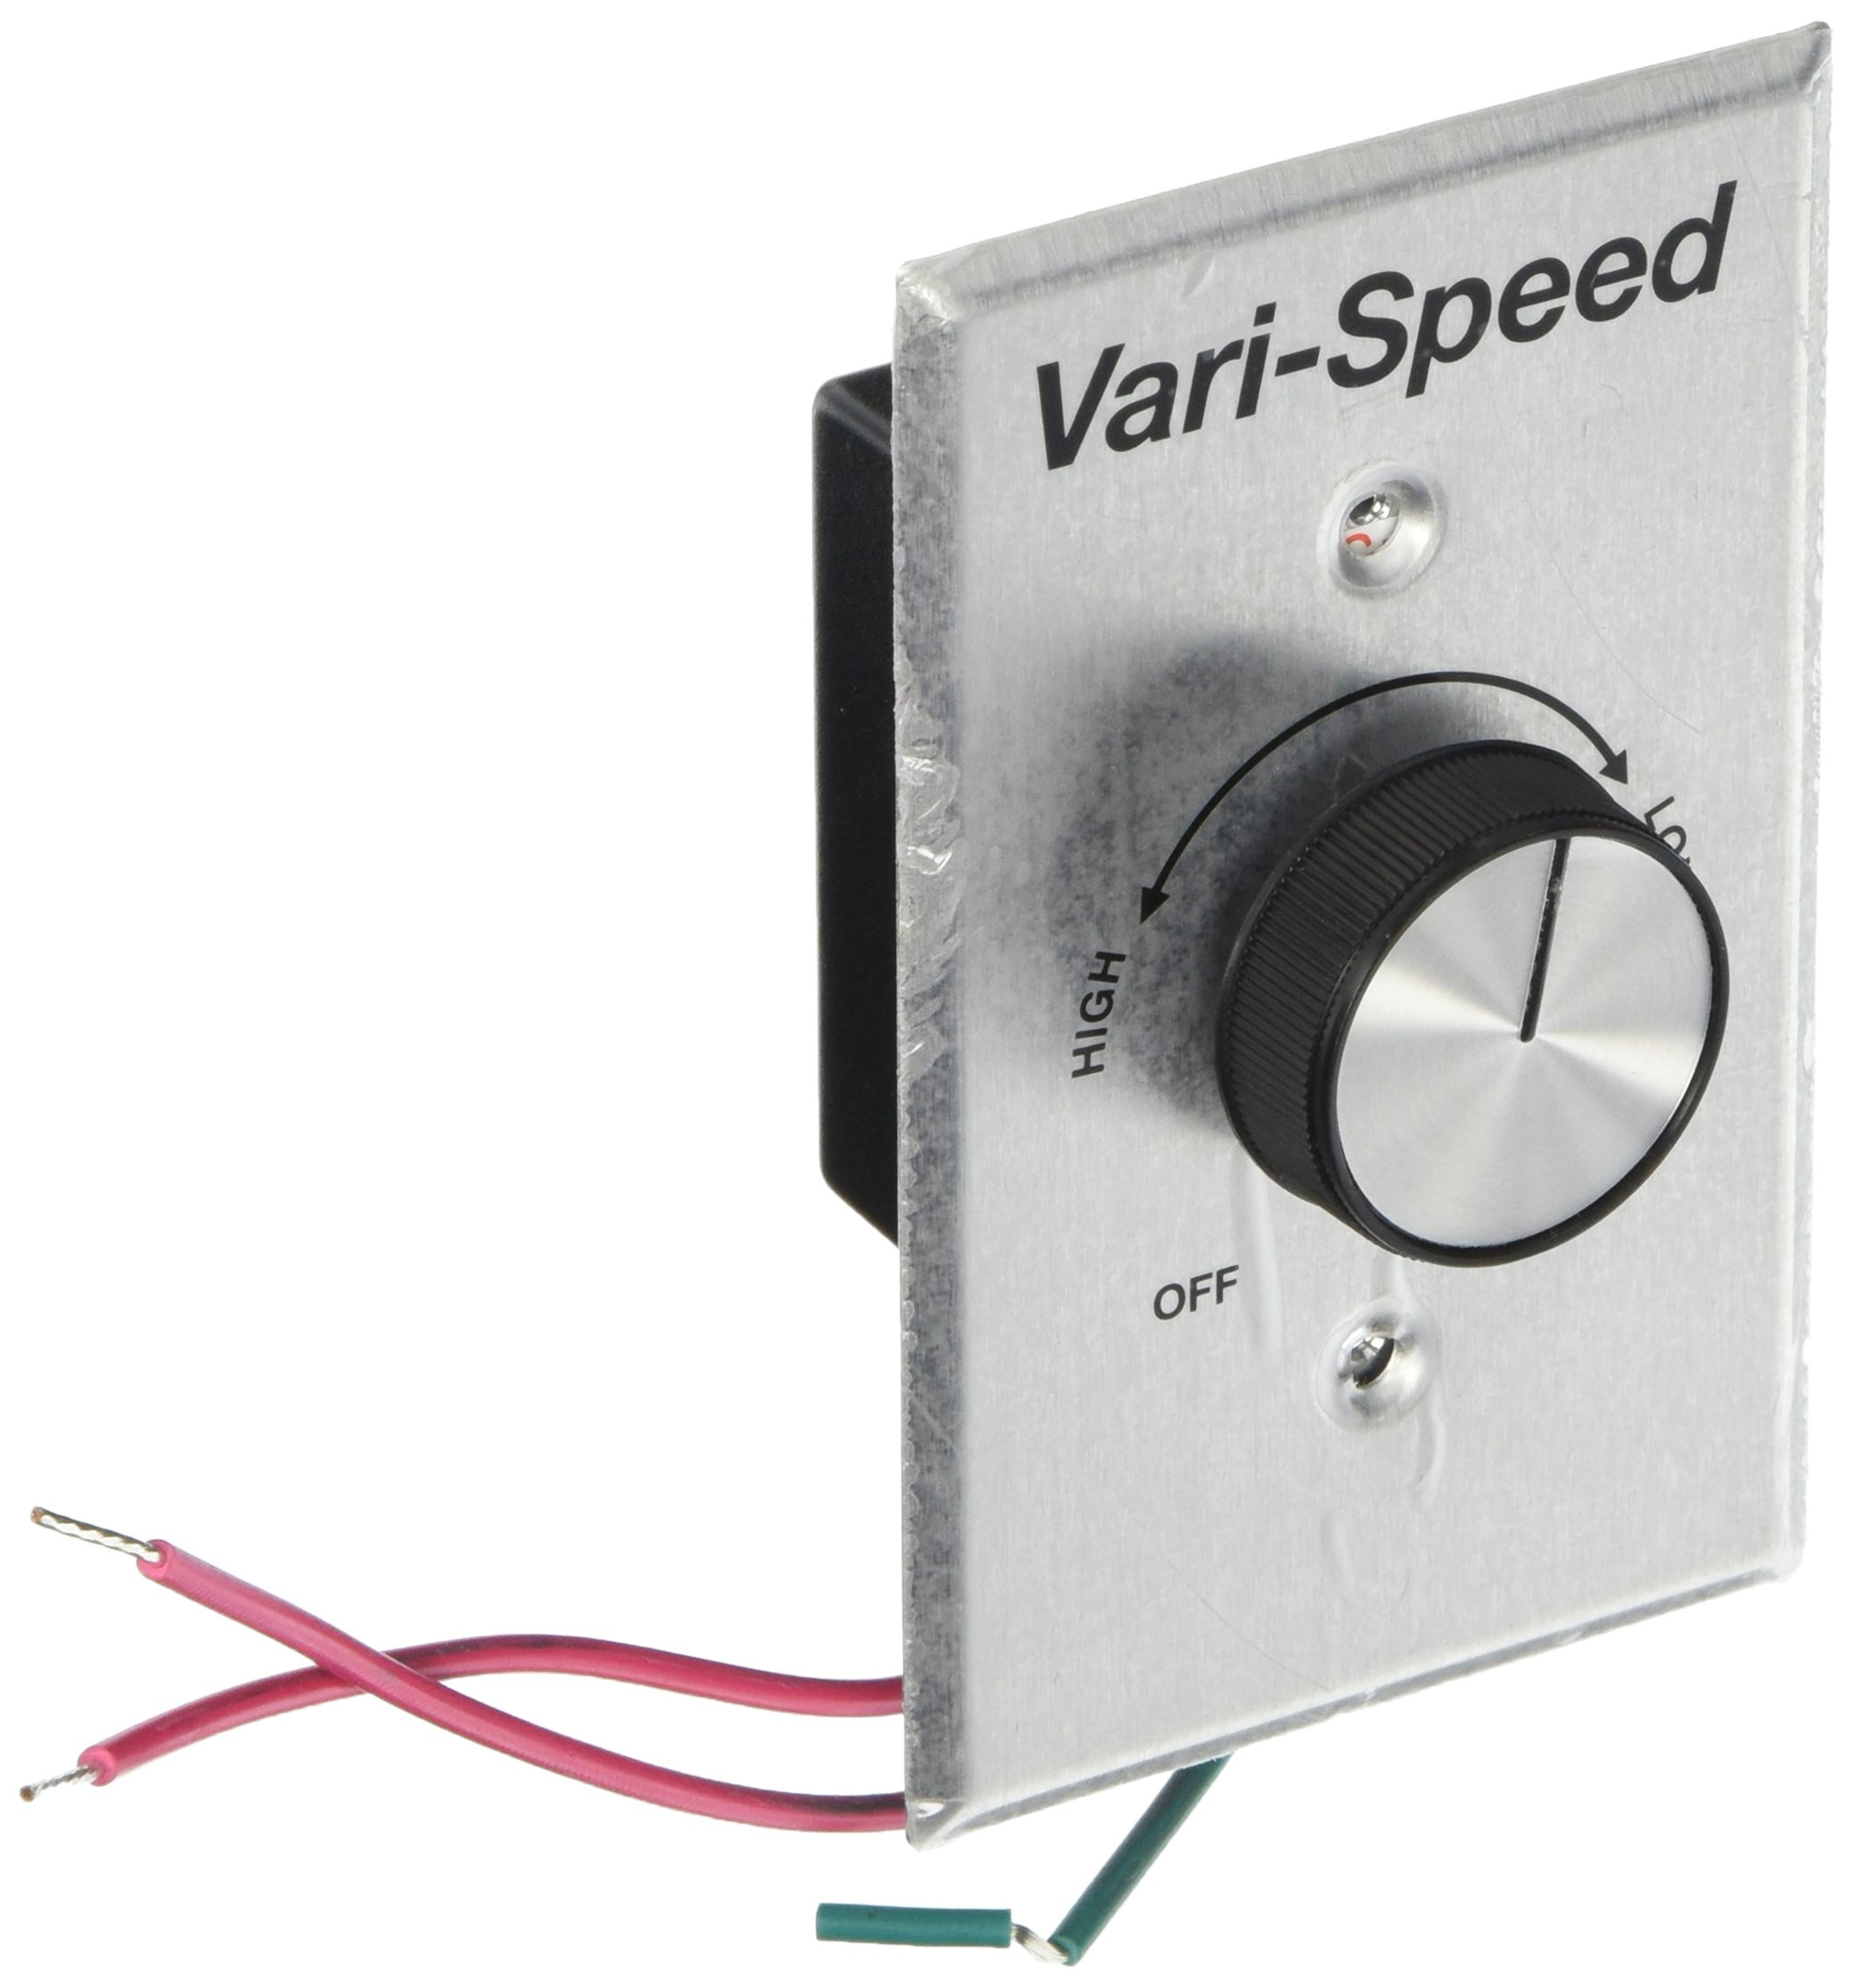 KB Electronics Model KBWC-15K (UR) Variable Speed Fan Control, Wall Mount, Rated 5.0 Amps @ 120 VAC for use with Shaded Pole and PSC Motors